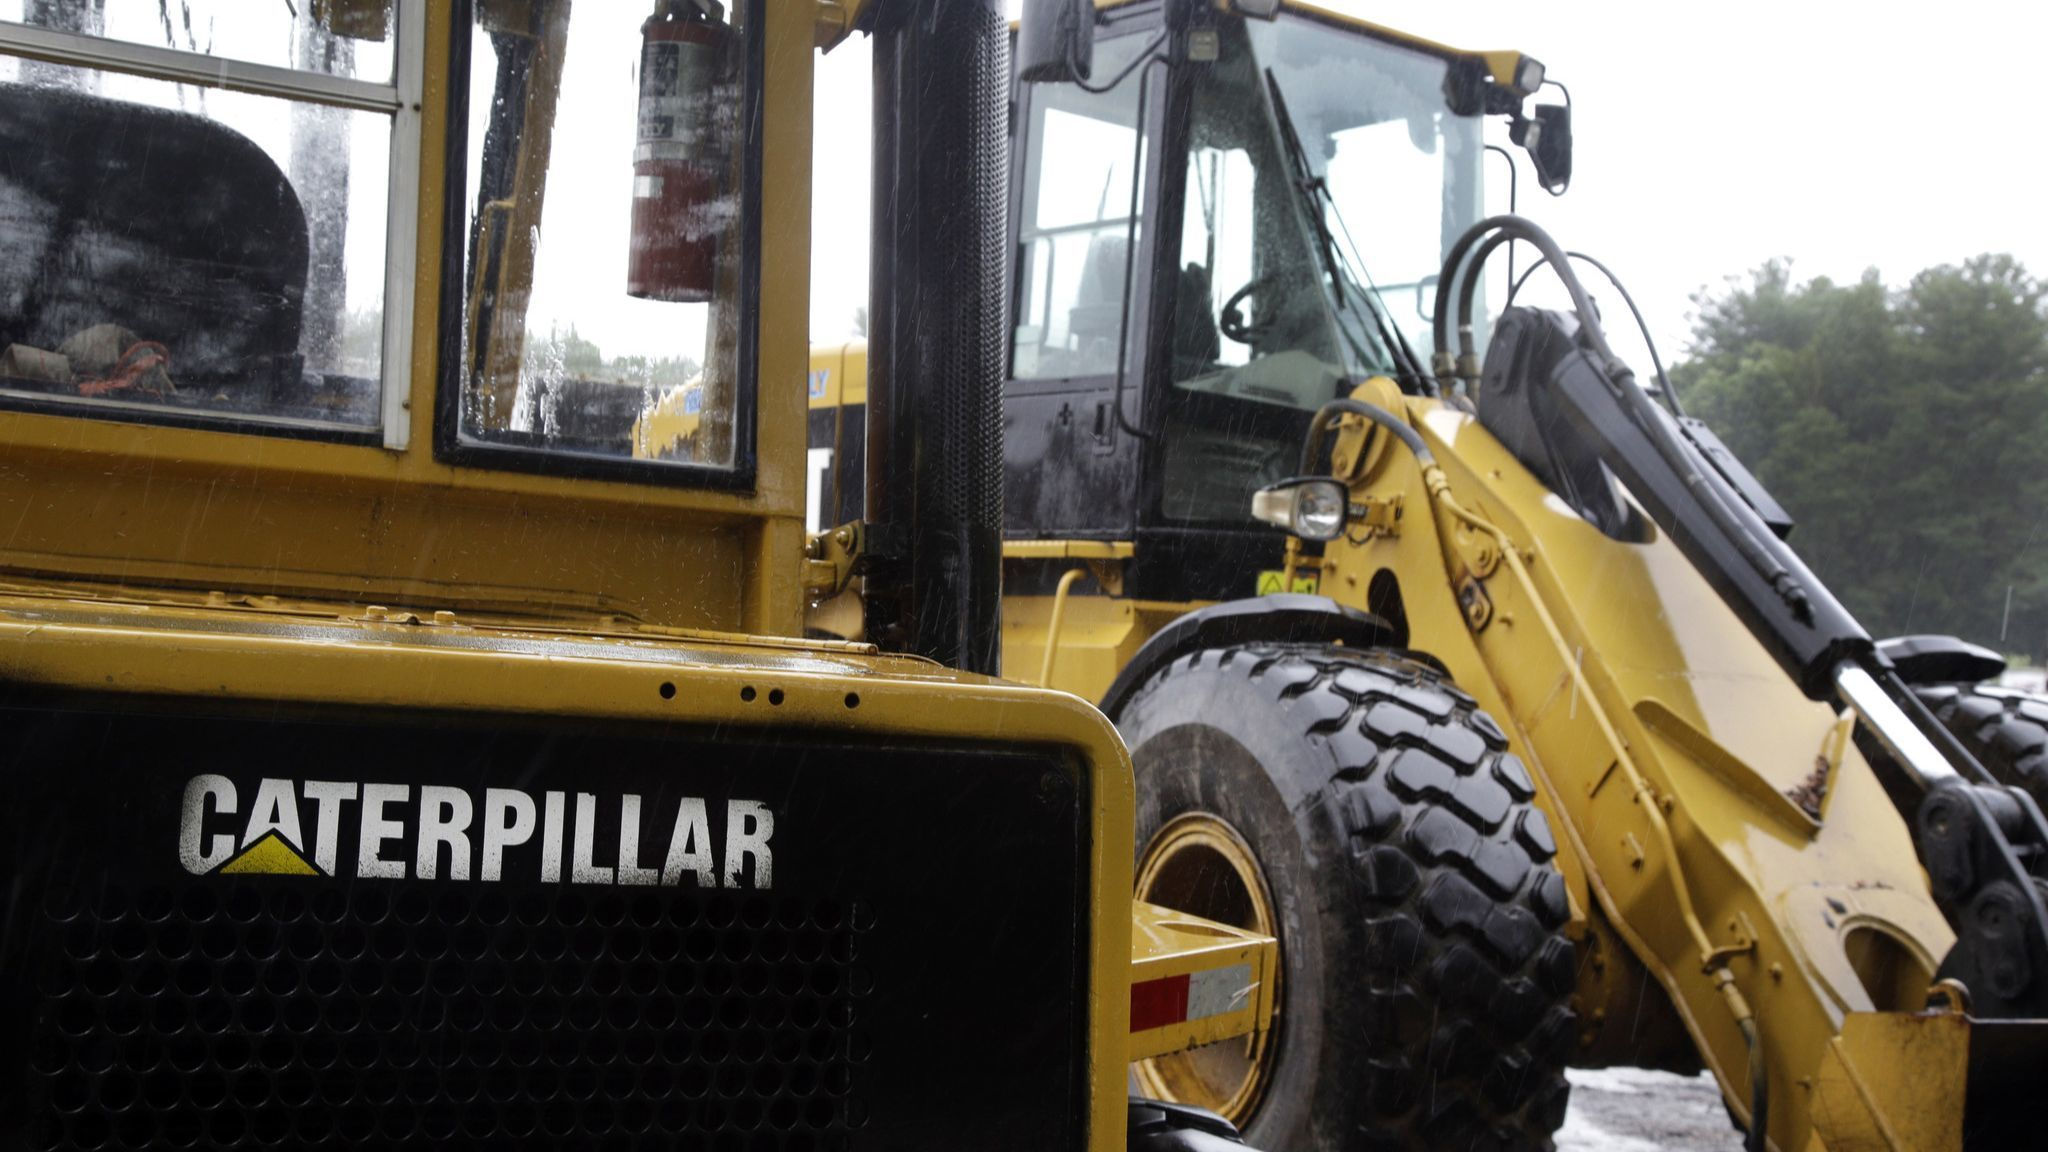 Caterpillar, famed for lumbering earthmovers, expanding Chicago office to stay nimble, lure tech talent